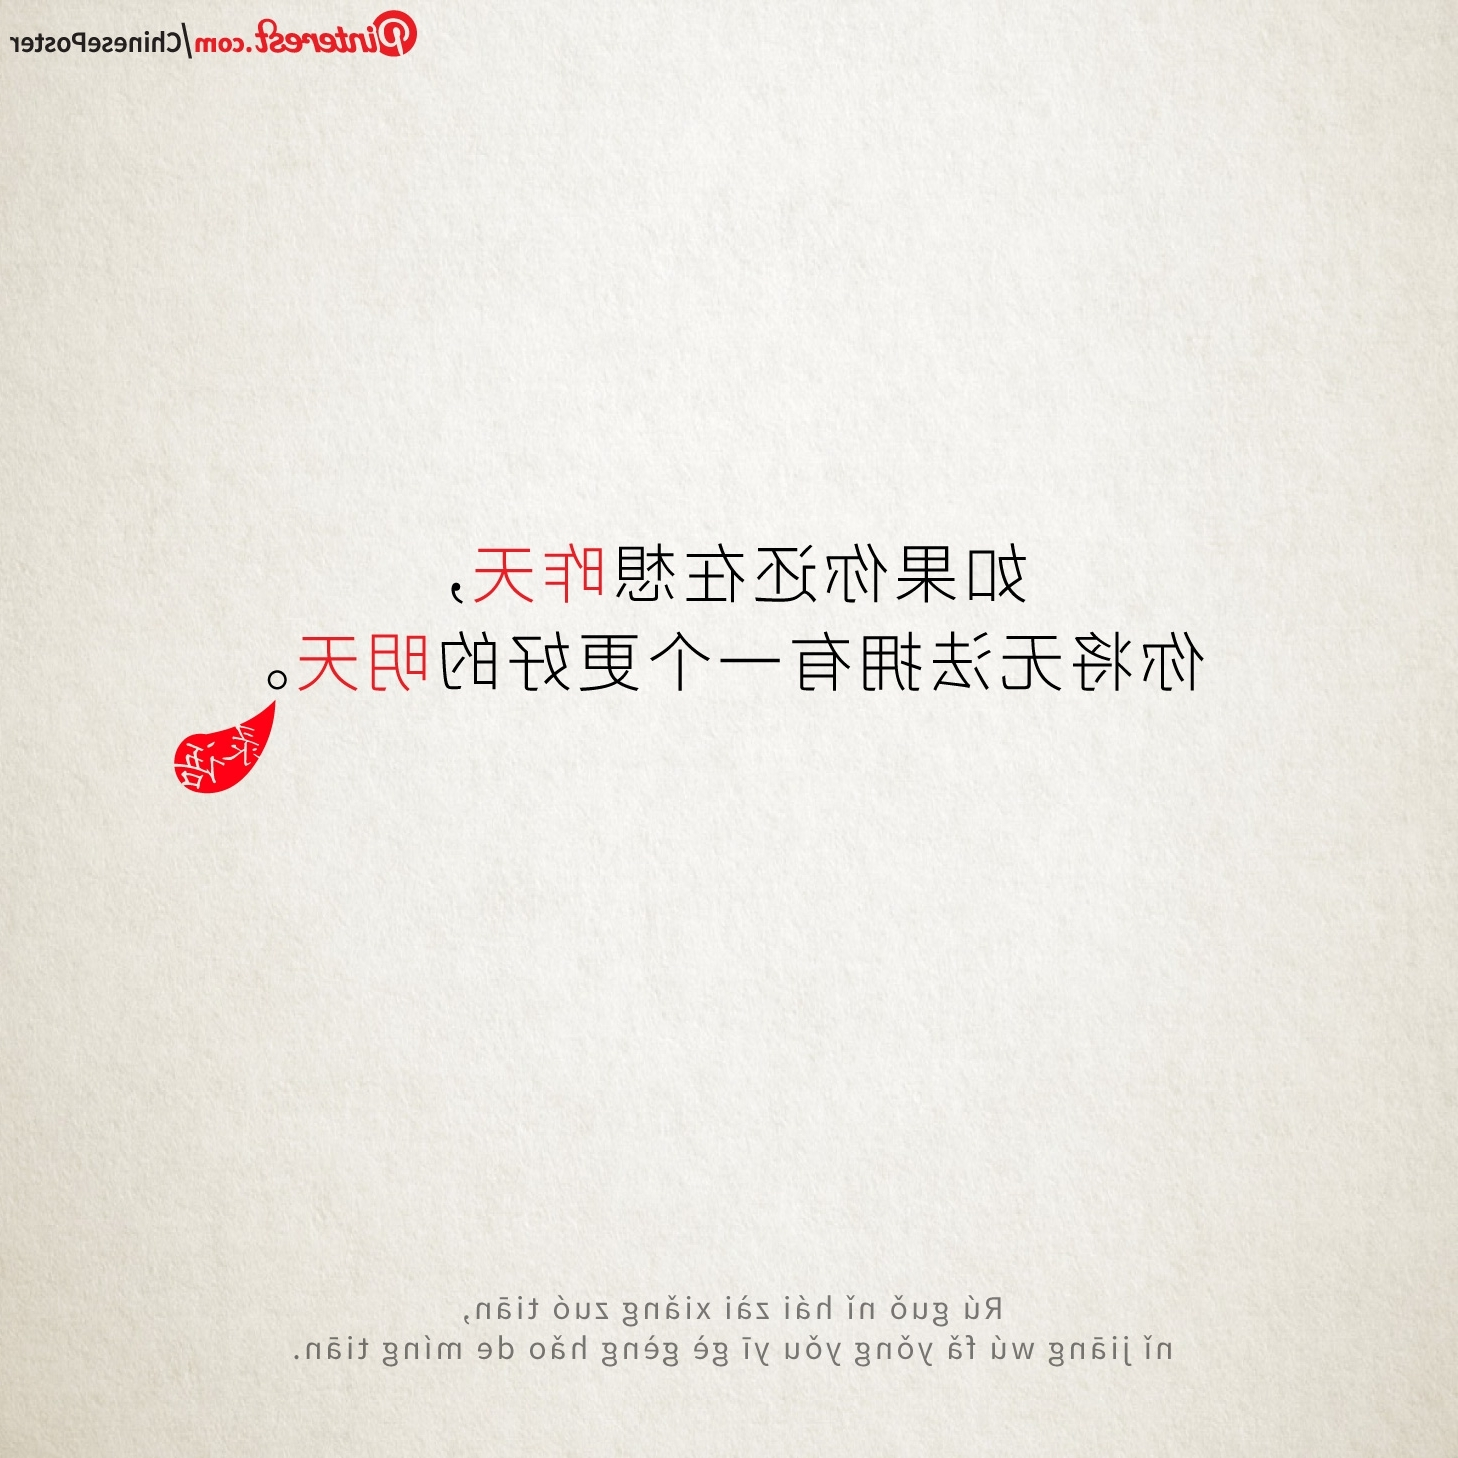 Well Known Wo Ai Ni In Chinese Wall Art Throughout Pinchinese Posters & Flashcards On Quotes In Chinese (View 12 of 15)